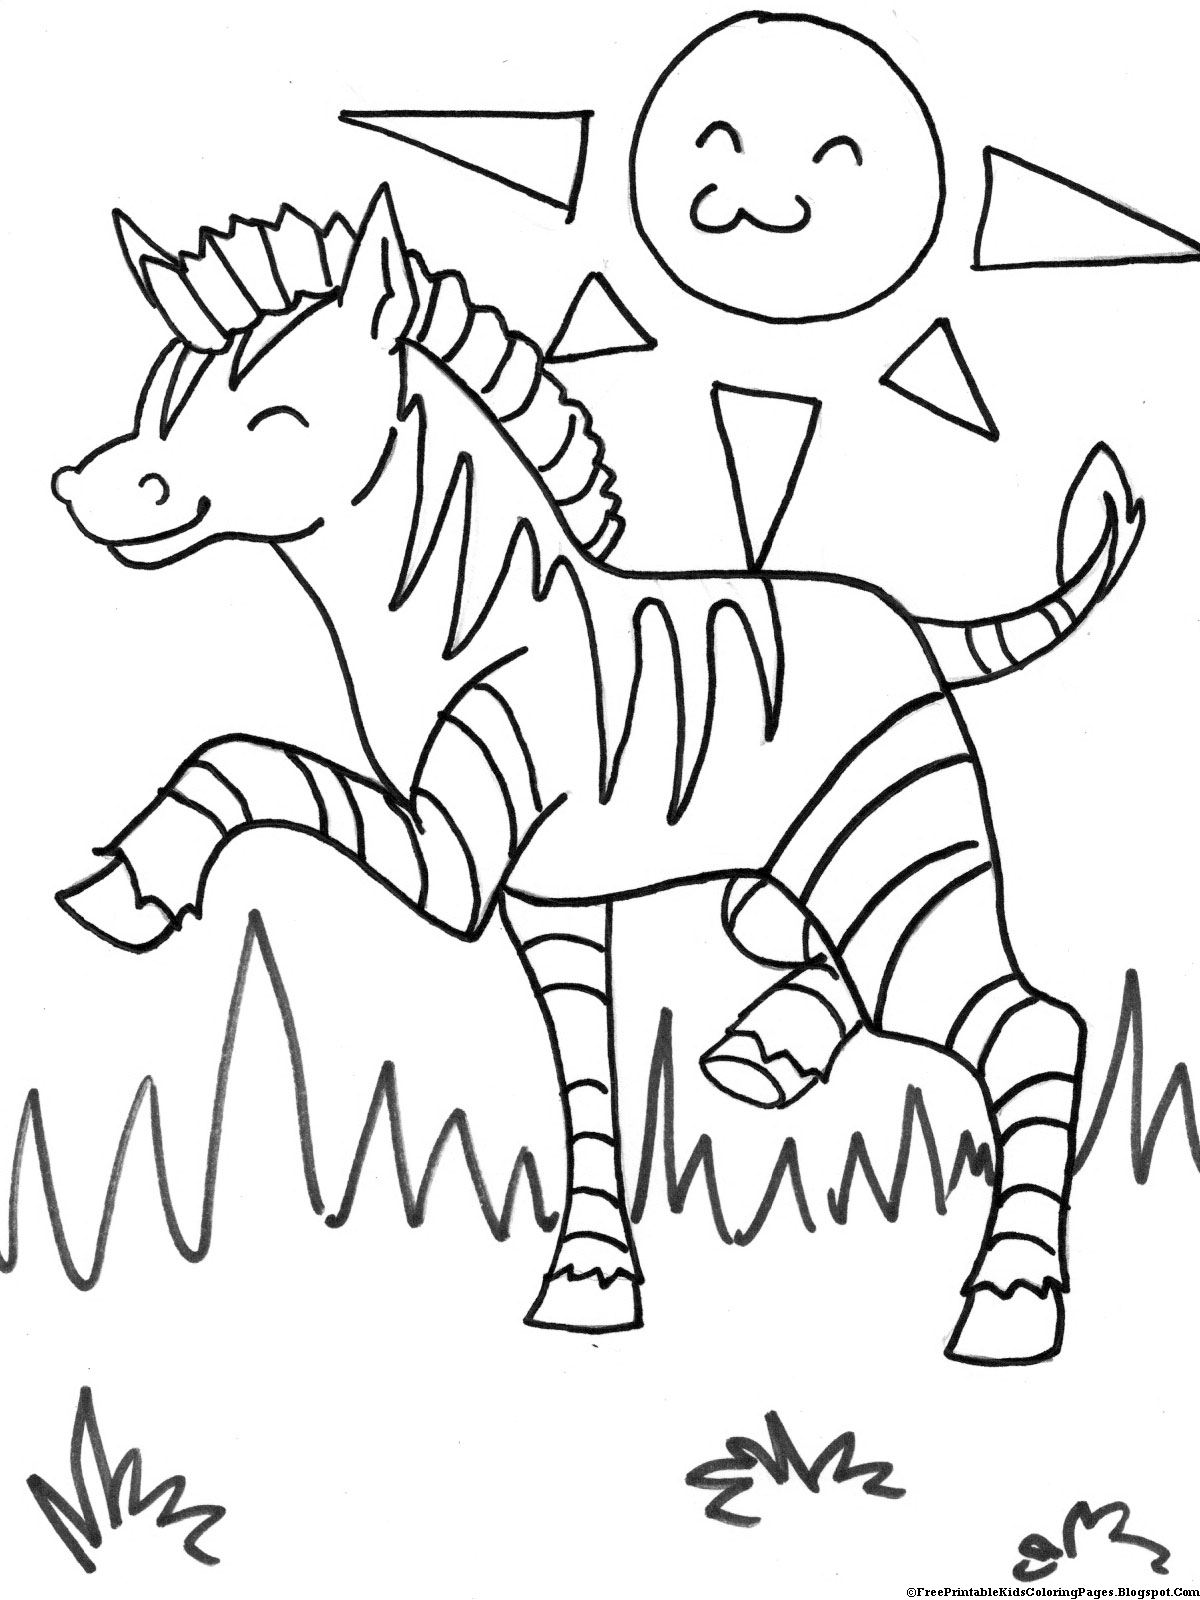 coloring clipart black and white zebra clipart zebra black and white clipart zebra black and clipart white zebra black and coloring